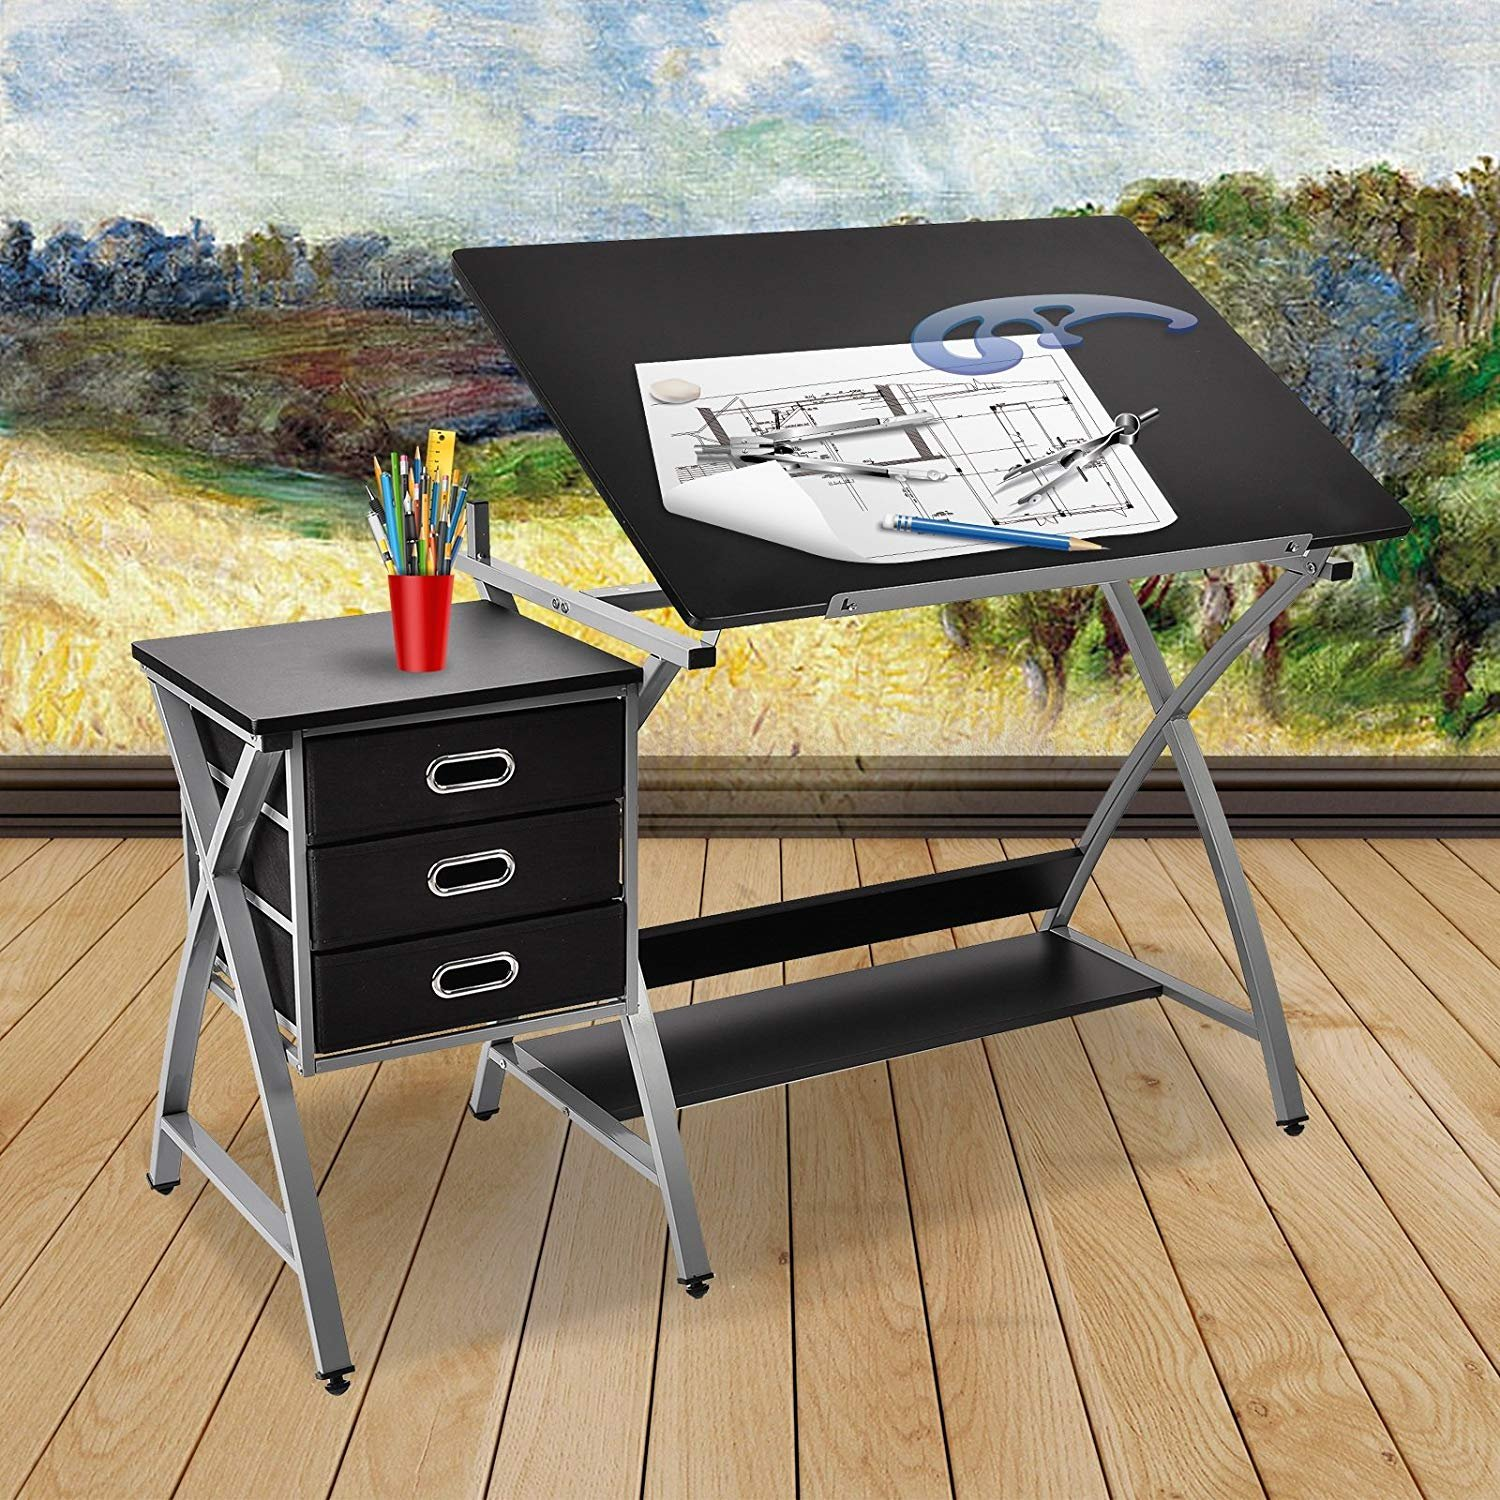 Mecor Drafting Table Art Craft Drawing Desk Art Hobby Folding Adjustable with Stool and 3 Drawers,Additional lower shelf,Black